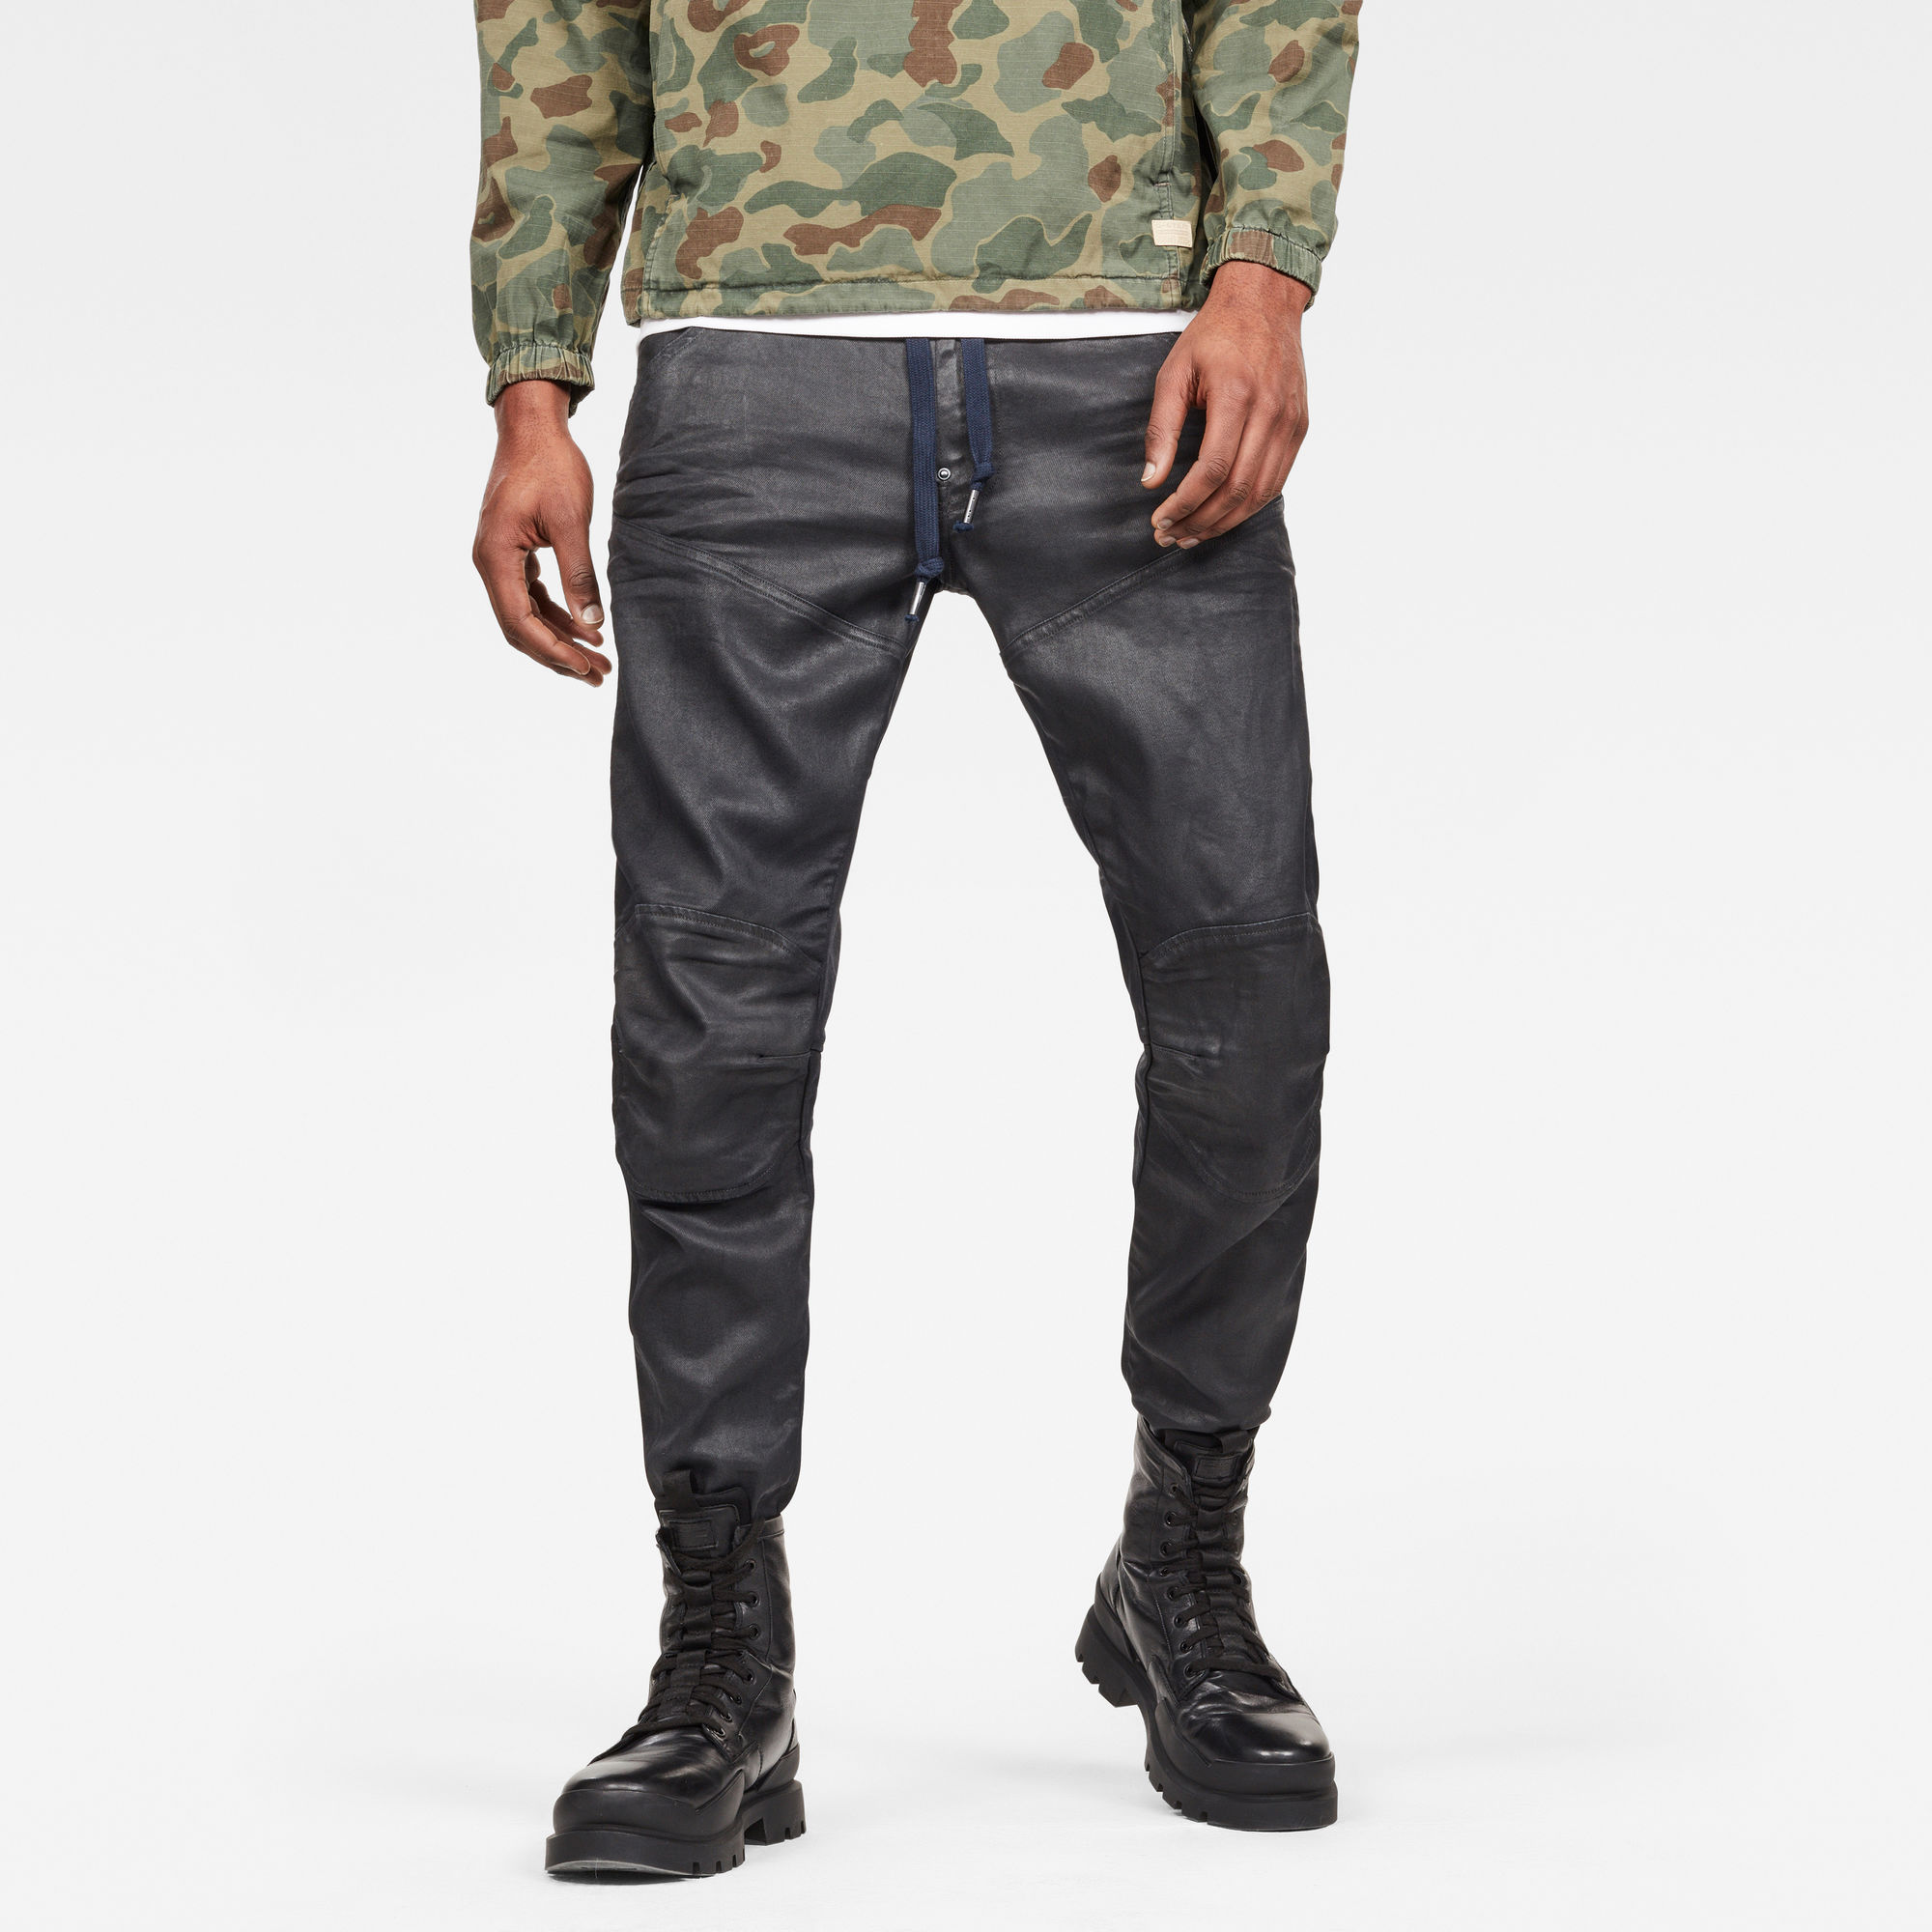 Image of G Star Raw 5620 3D Sport Straight Tapered Jeans